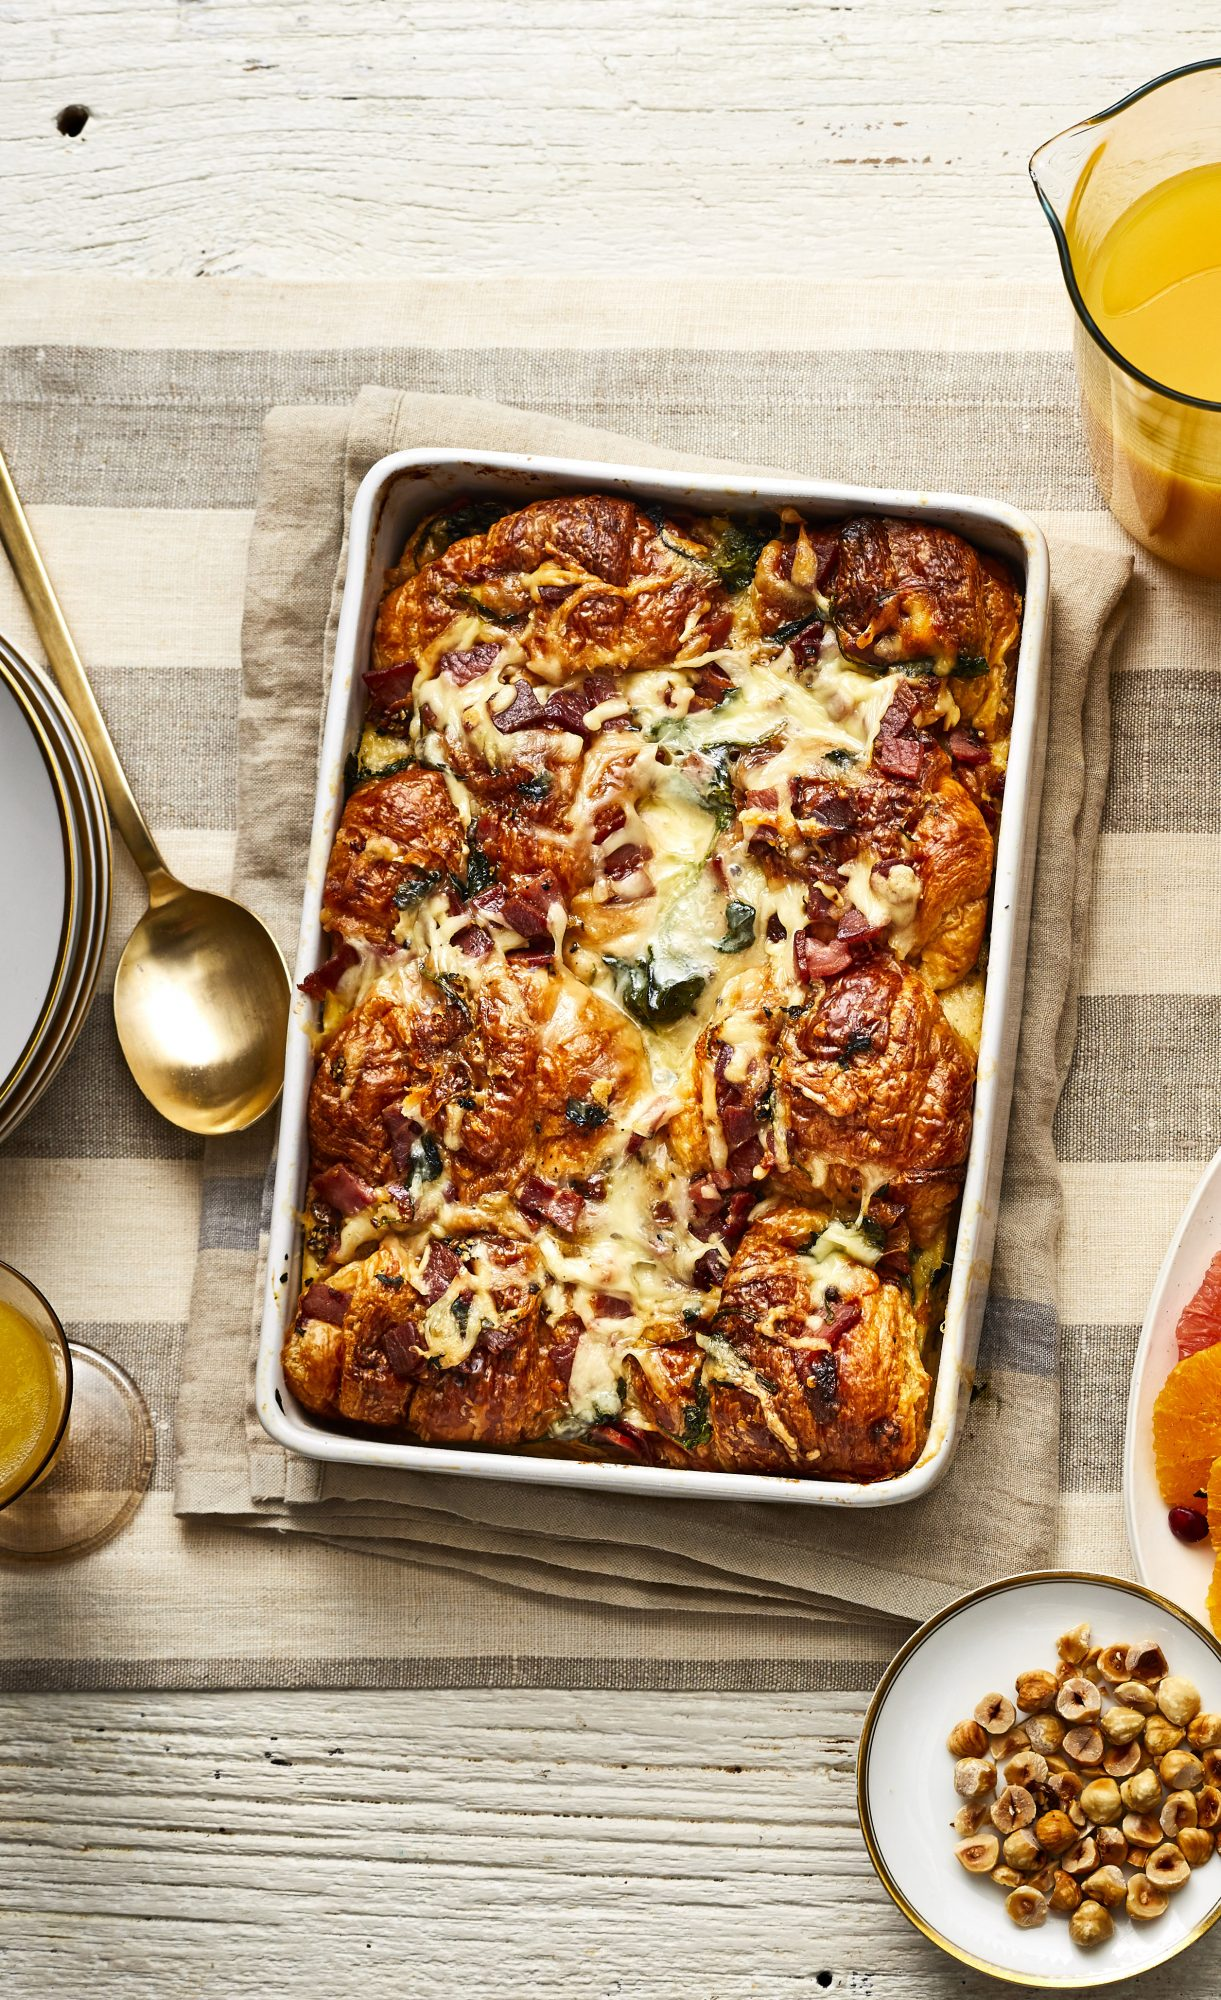 Make-Ahead Croissant Breakfast Casserole